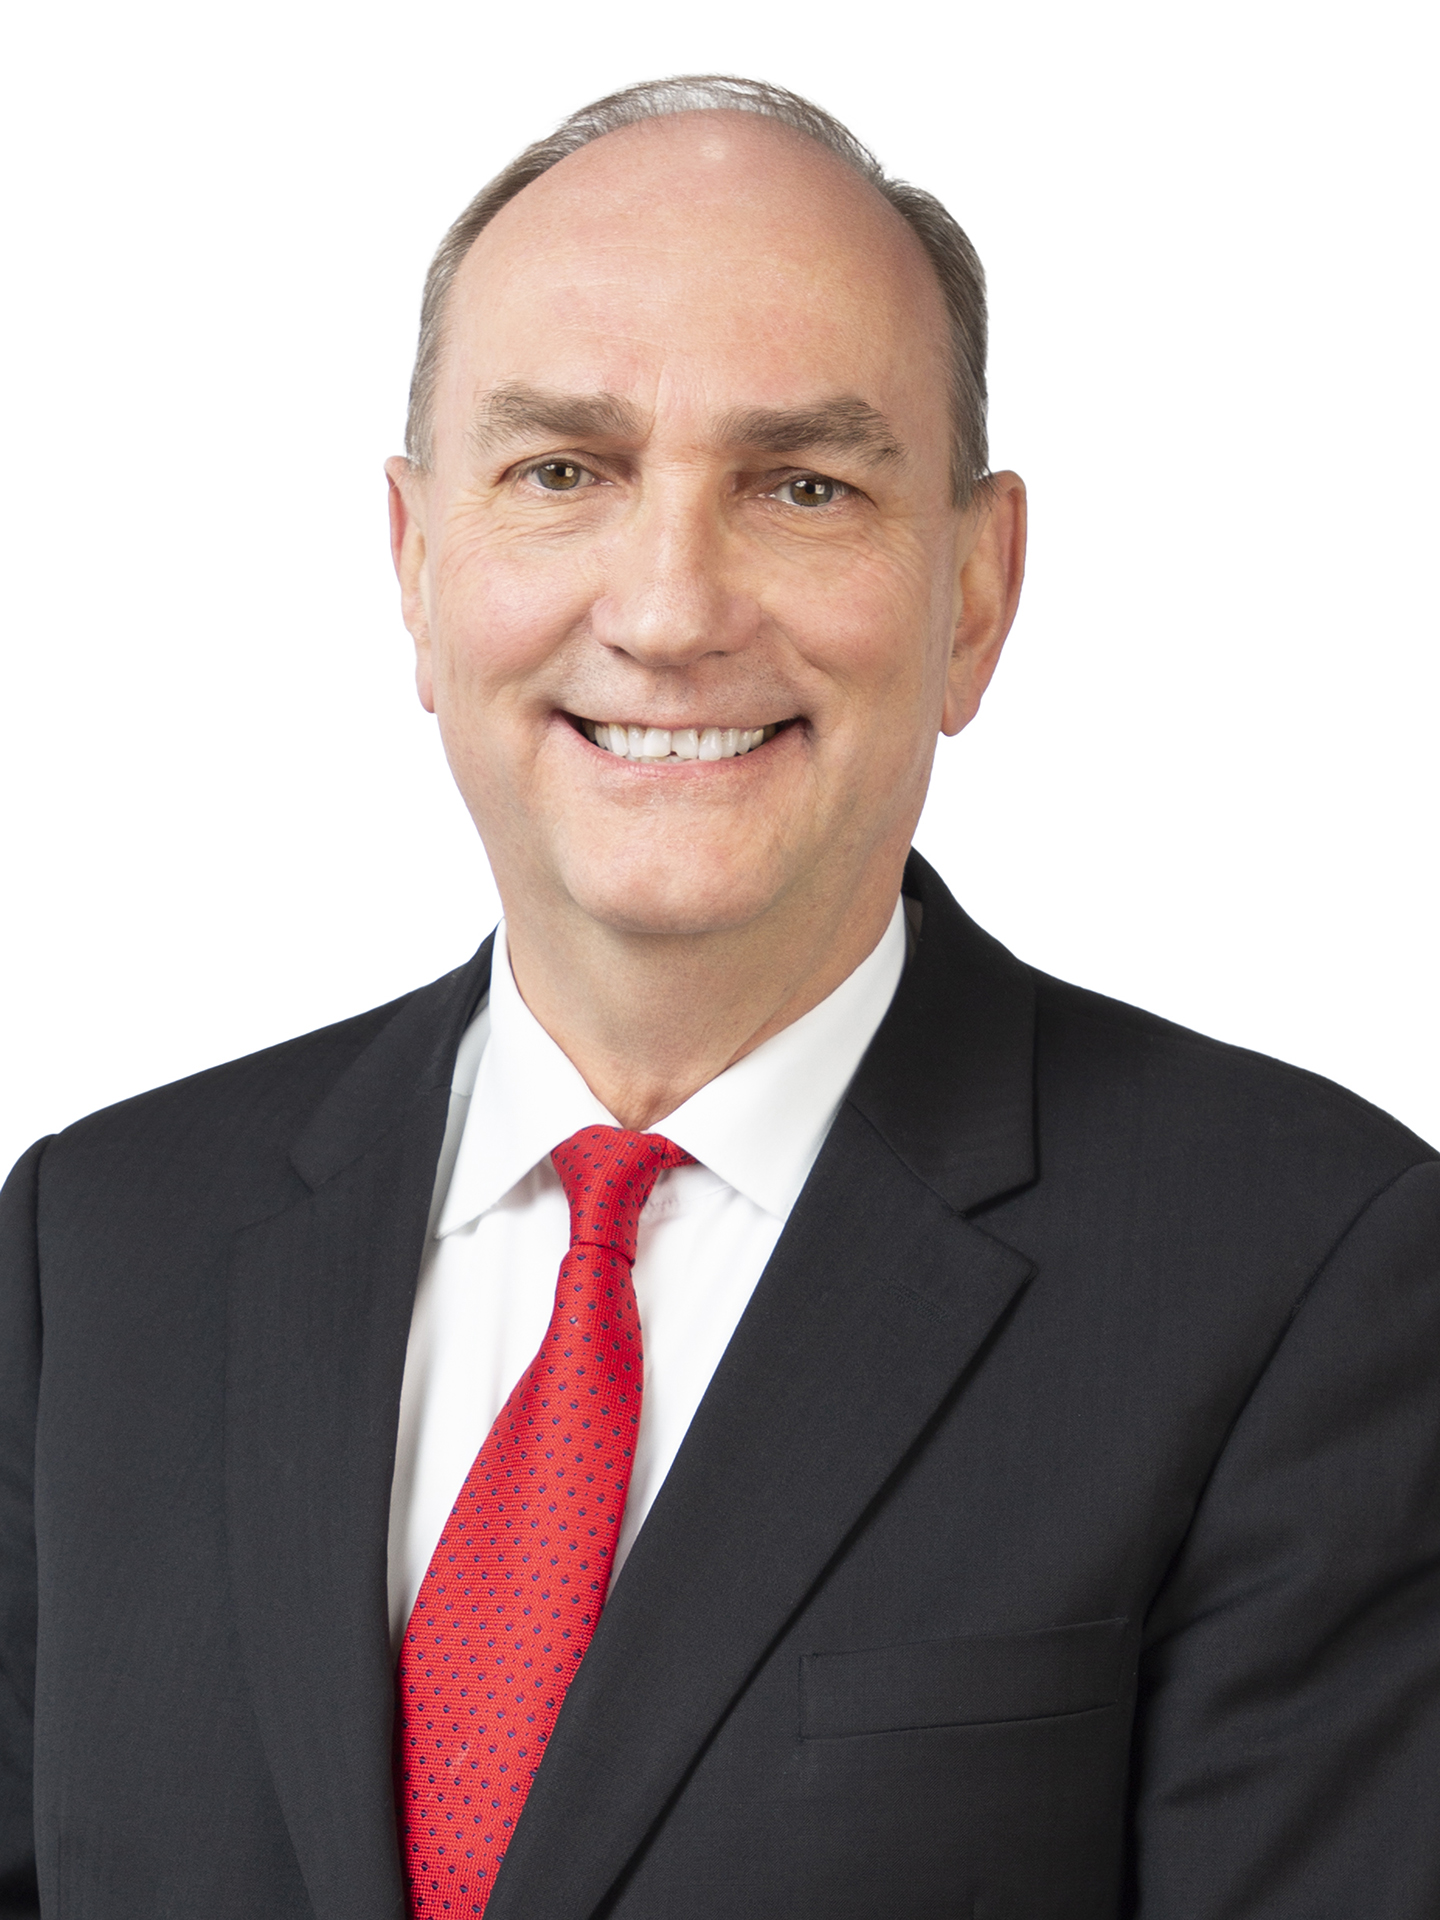 Wil Klein is an exceptional salesperson, because we feel that he will always get the absolute best price irrespective of where the market is at.